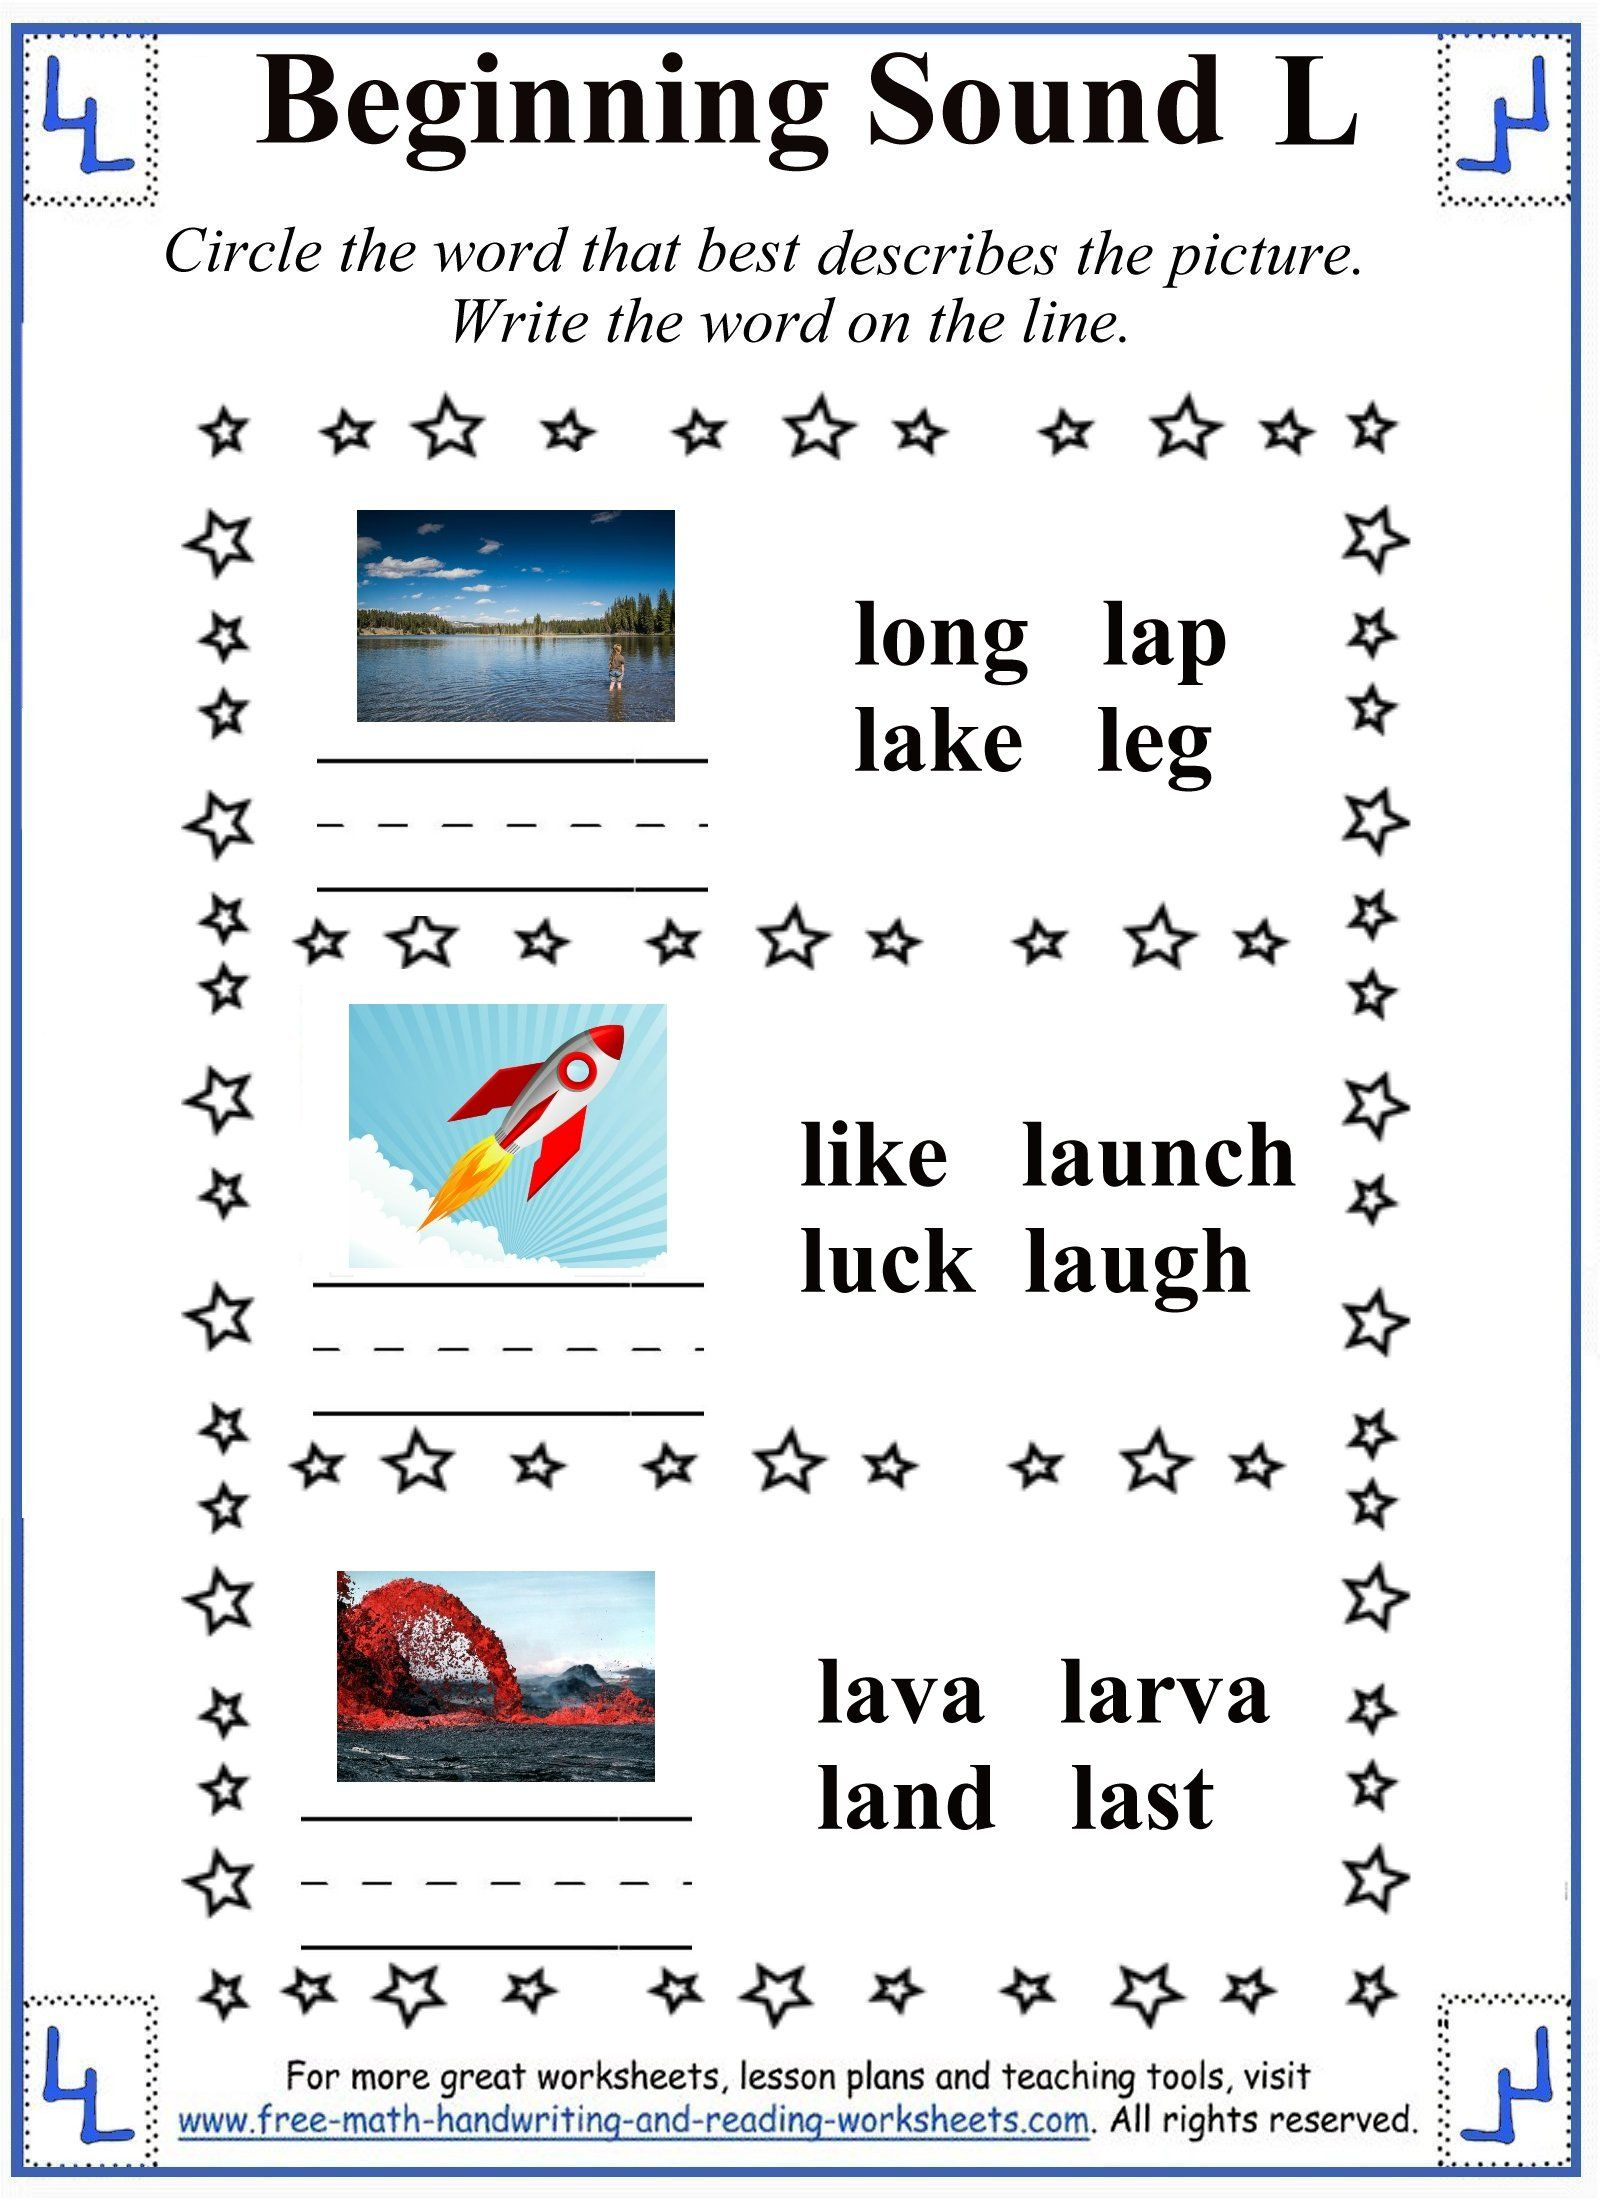 Worksheet Consonant Letters Worksheets l letter worksheet 3 consonant letters pinterest learn beginning and ending sounds with these printable n worksheets for elementary pre k students find l